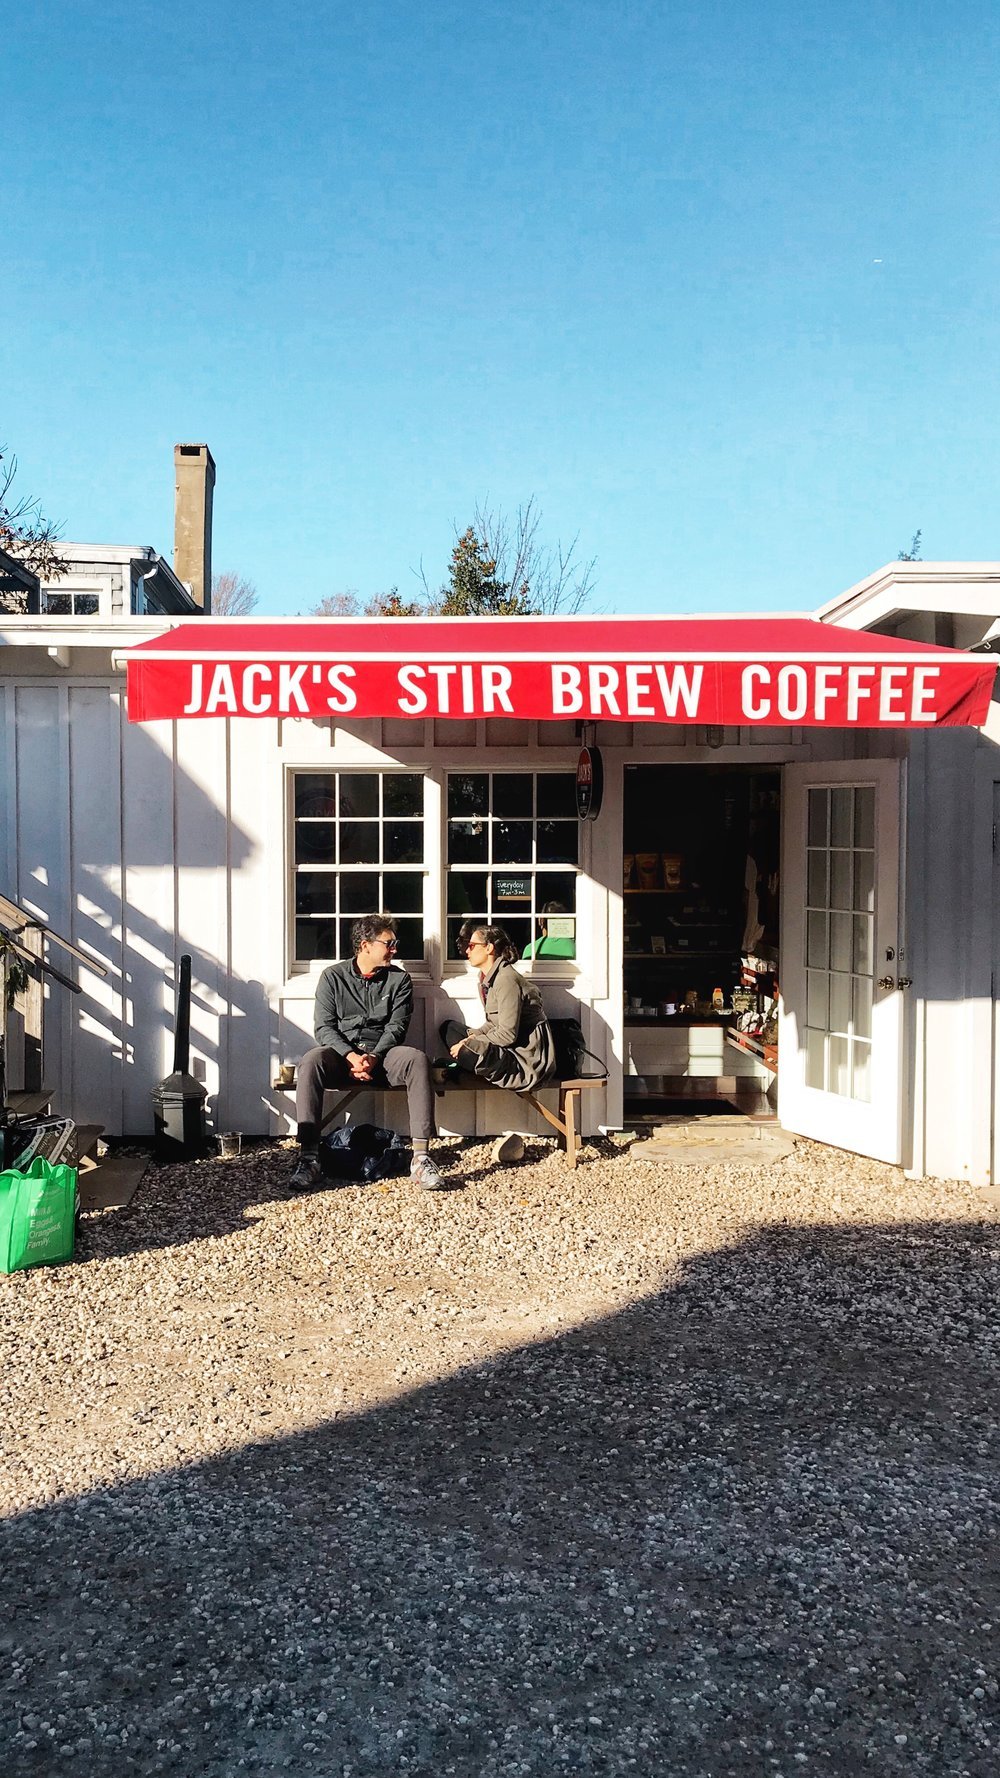 jacks stir brew coffee